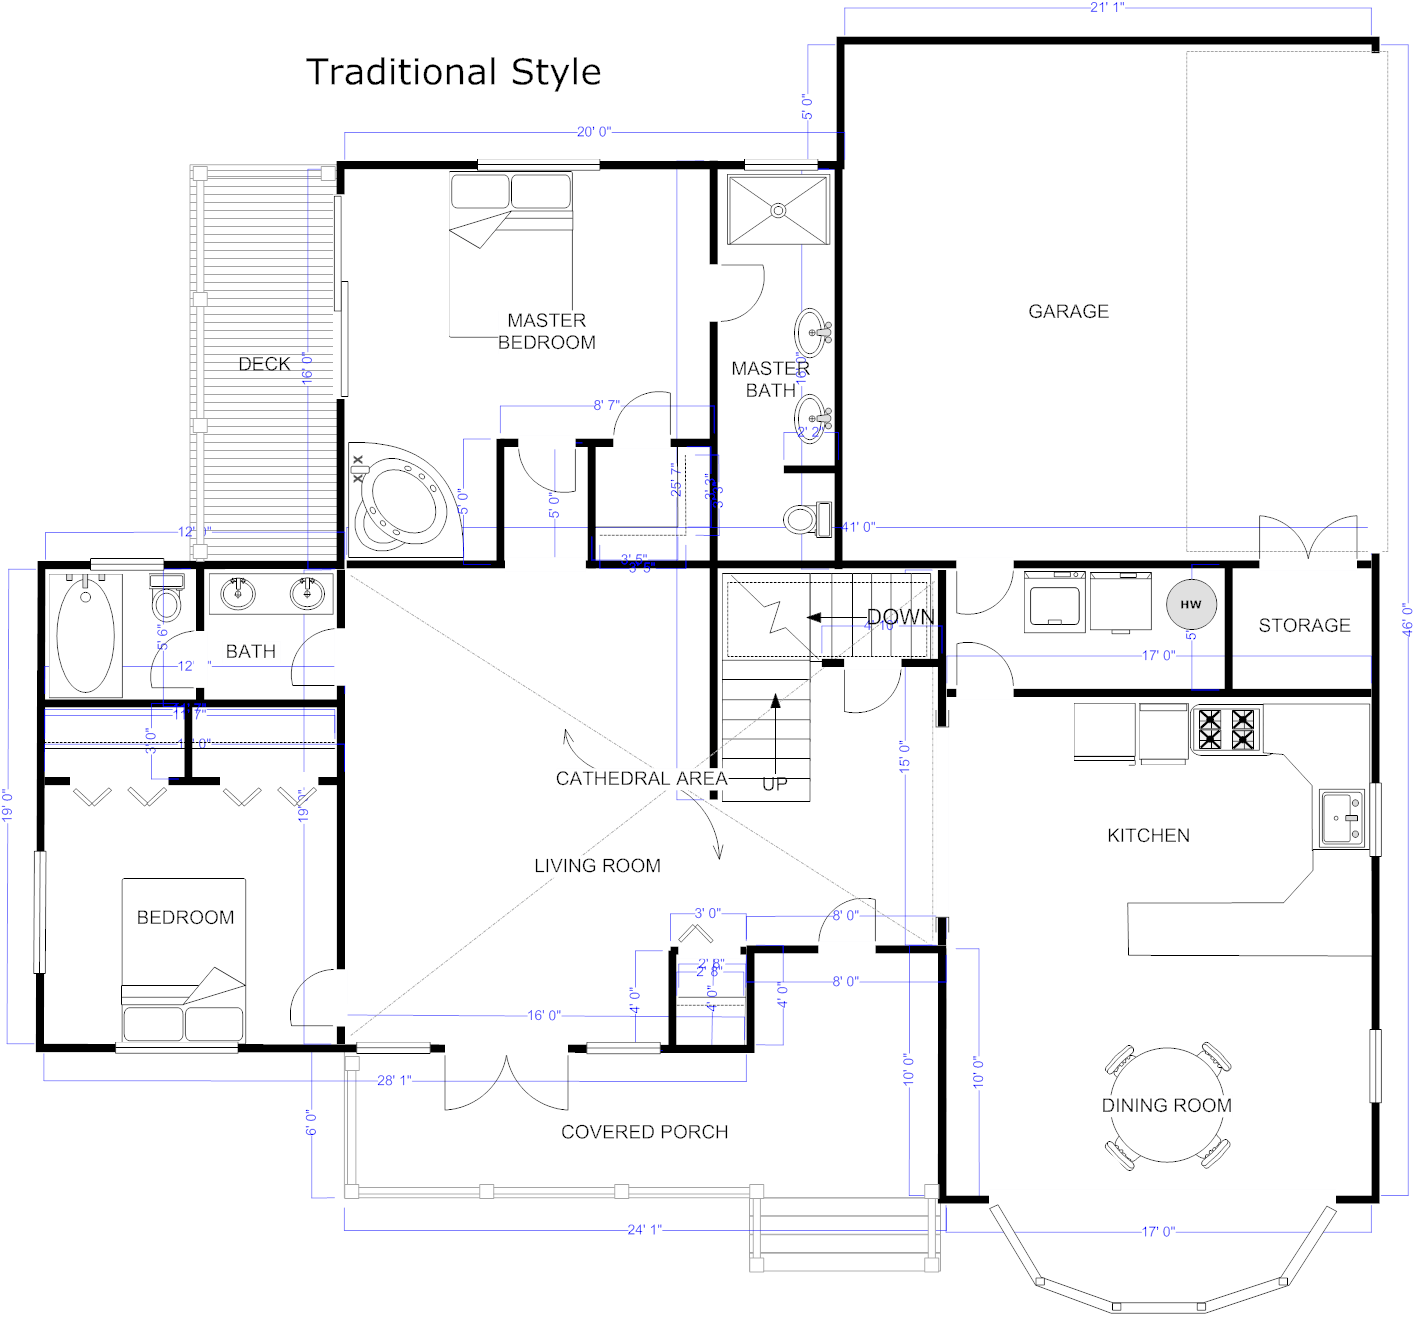 Free sample floor plans for houses gurus floor for Sample home floor plans